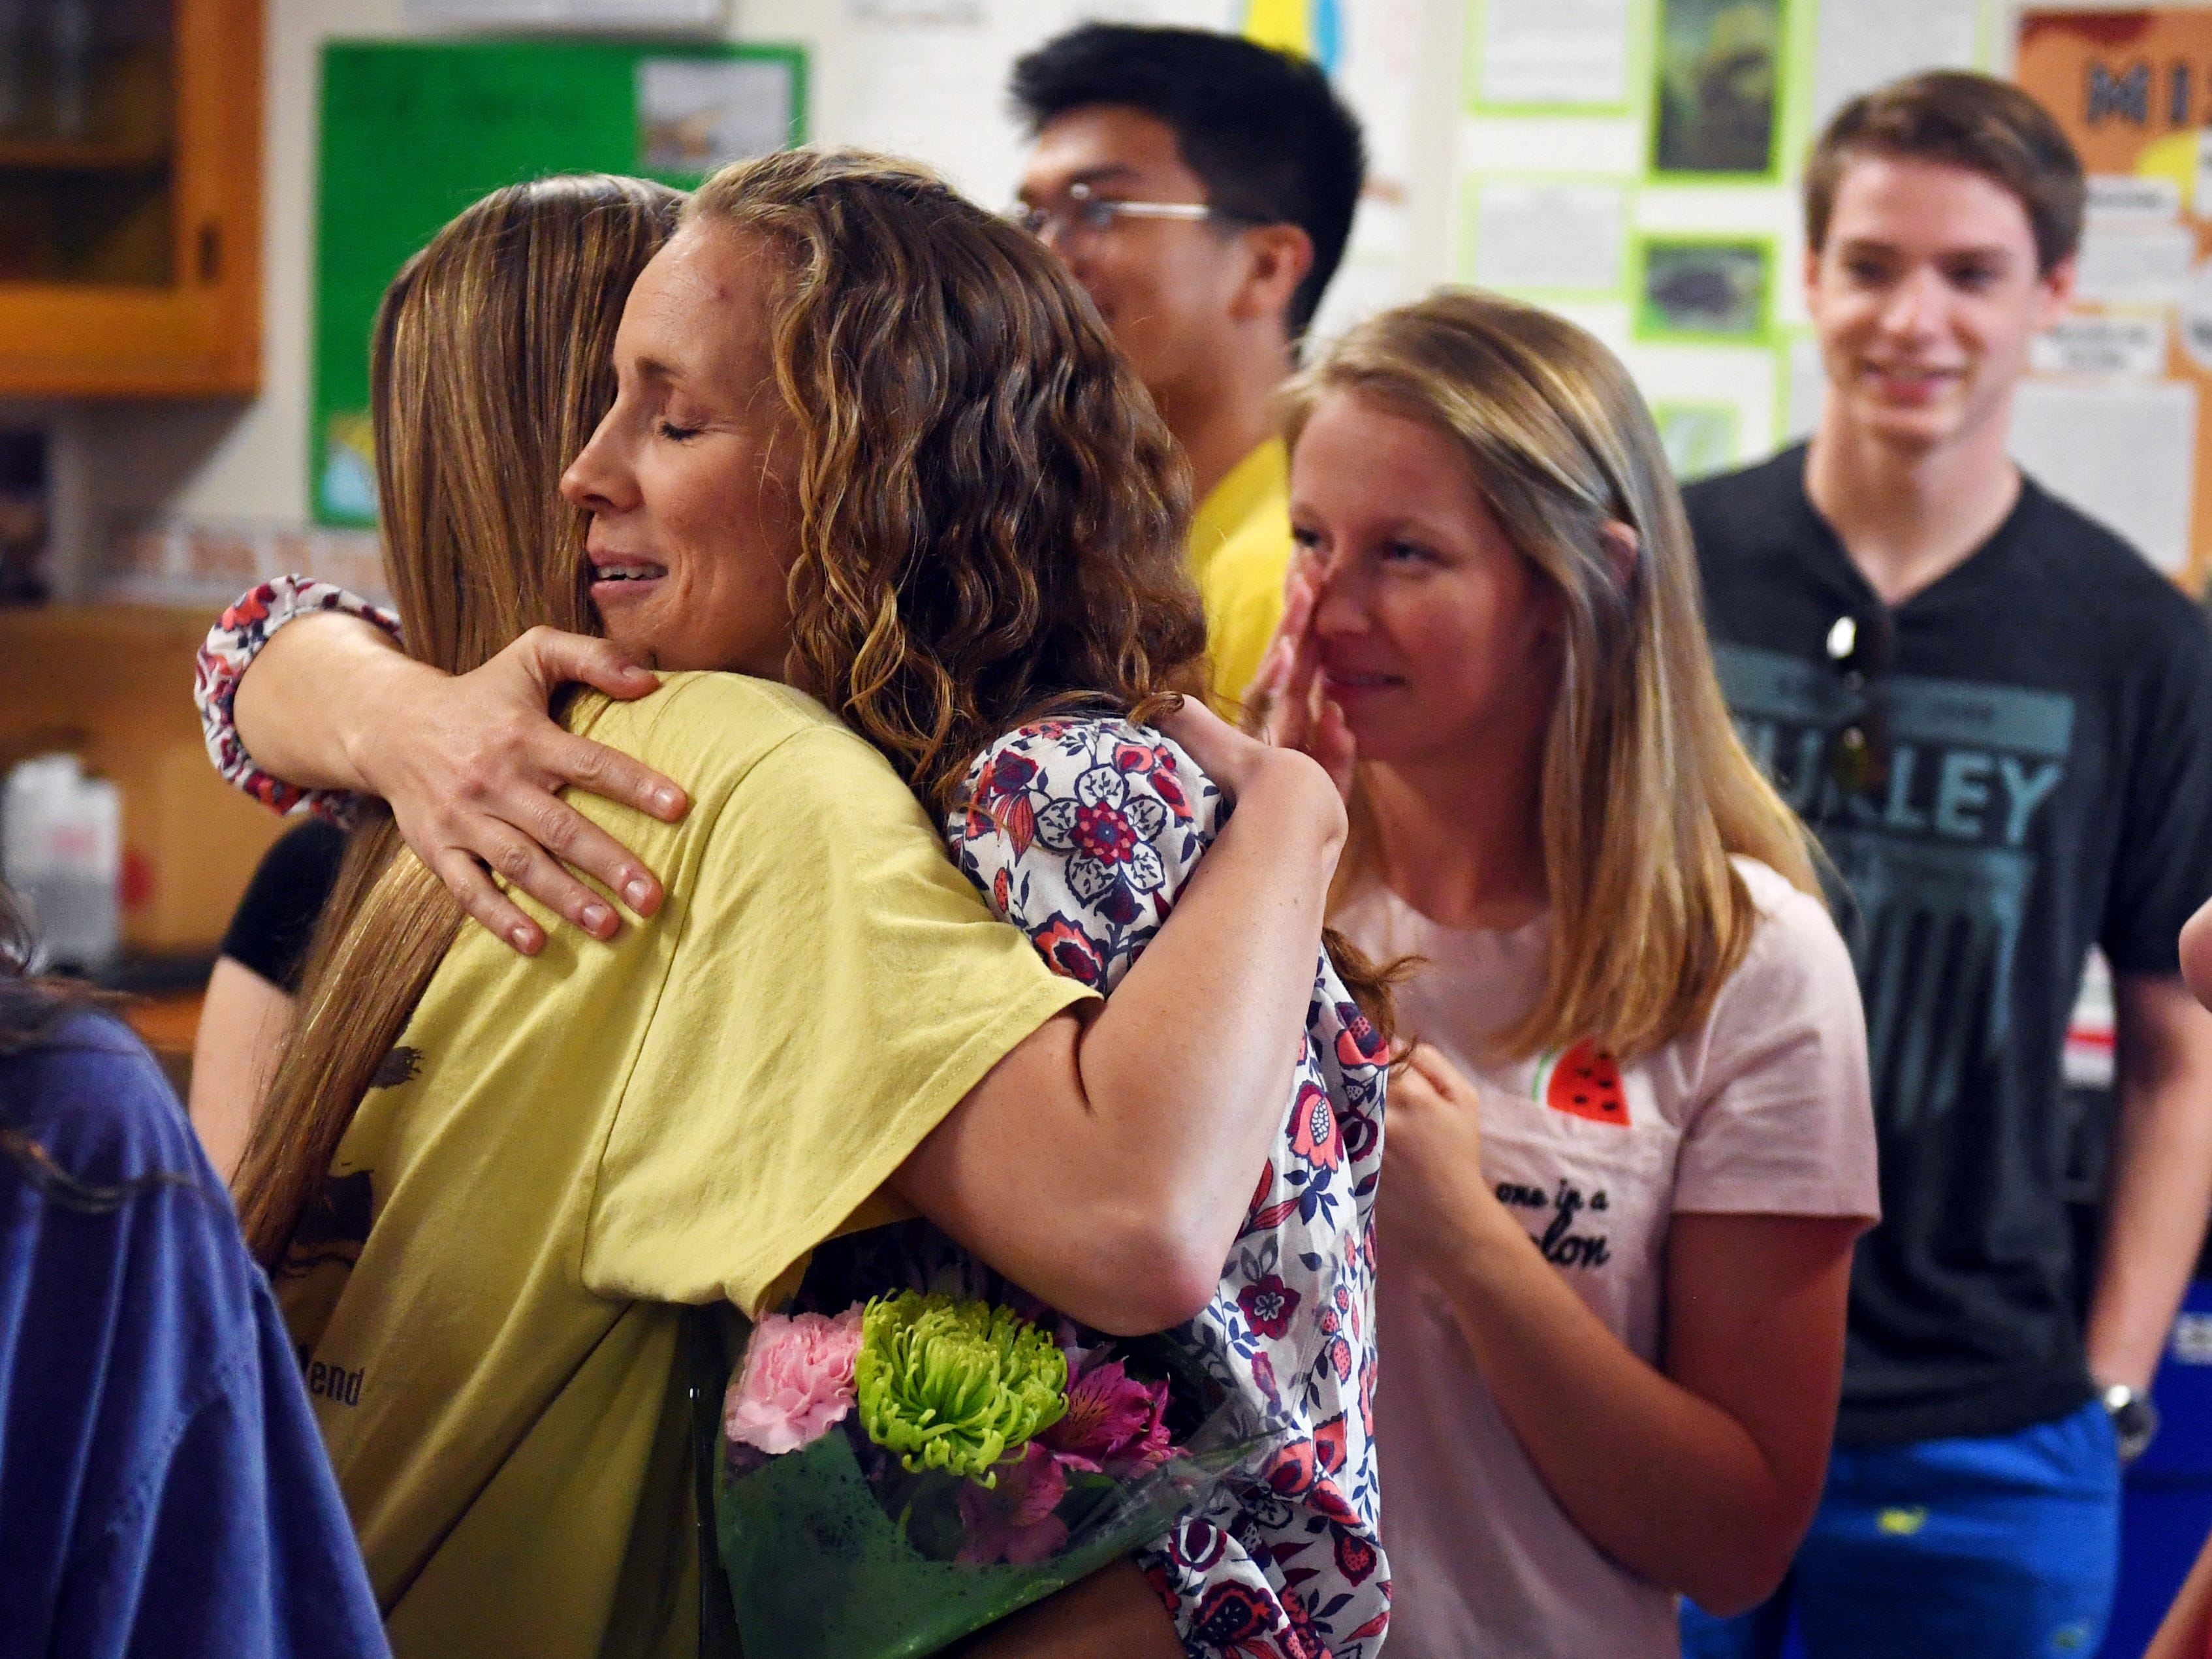 In a surprise visit, Dr. Nikki Mosblech, a science teacher at Vero Beach High School was informed by staff members of the Florida Department of Education that she is one of five finalists for the 2020 Florida Teacher of the Year on Tuesday, May 7, 2019. Mosblech was picked from 74 teachers from across the state as a finalist. The announcement of the Teacher of the Year will be made July 18.